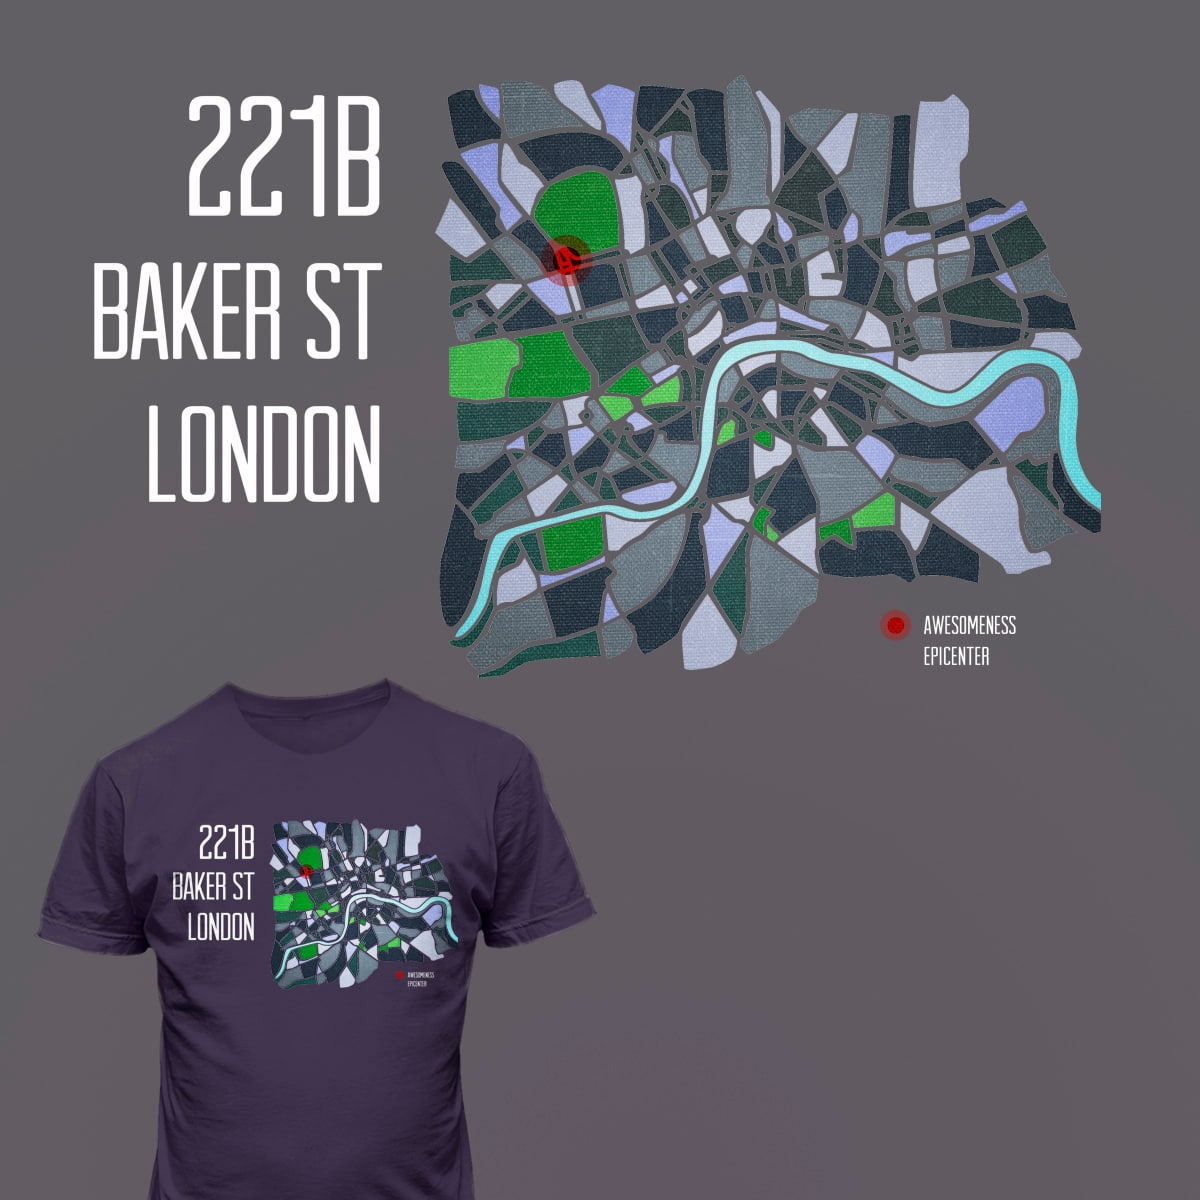 Awesomeness spot in London by mpaulberg on Threadless